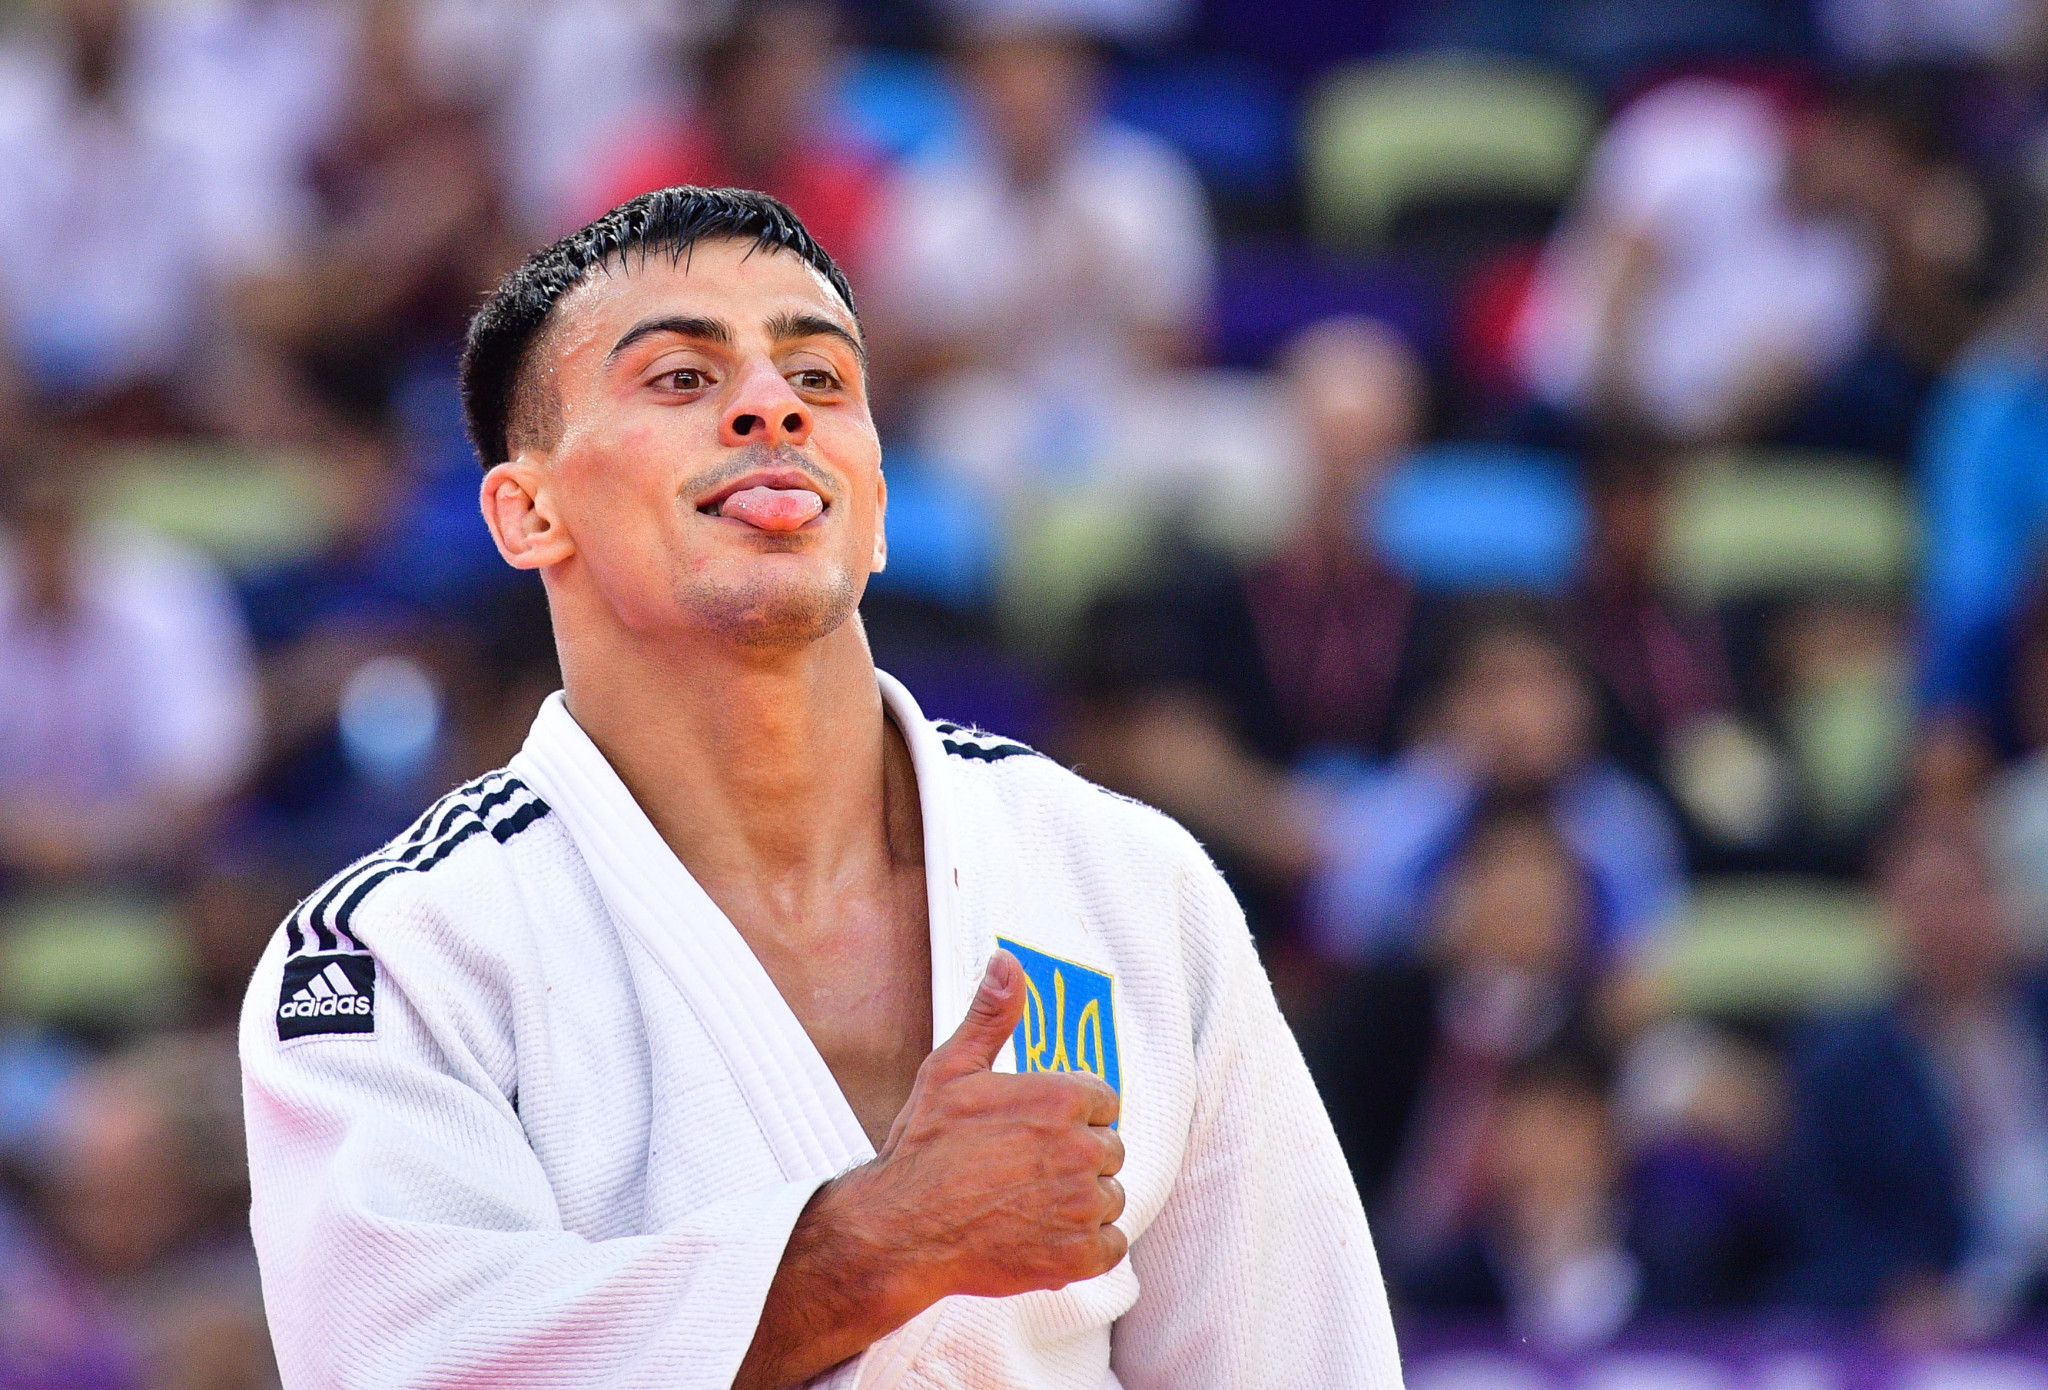 Former world champion, Ukraine's Georgii Zantaraia celebrates winning the bronze in Baku ©Getty Images